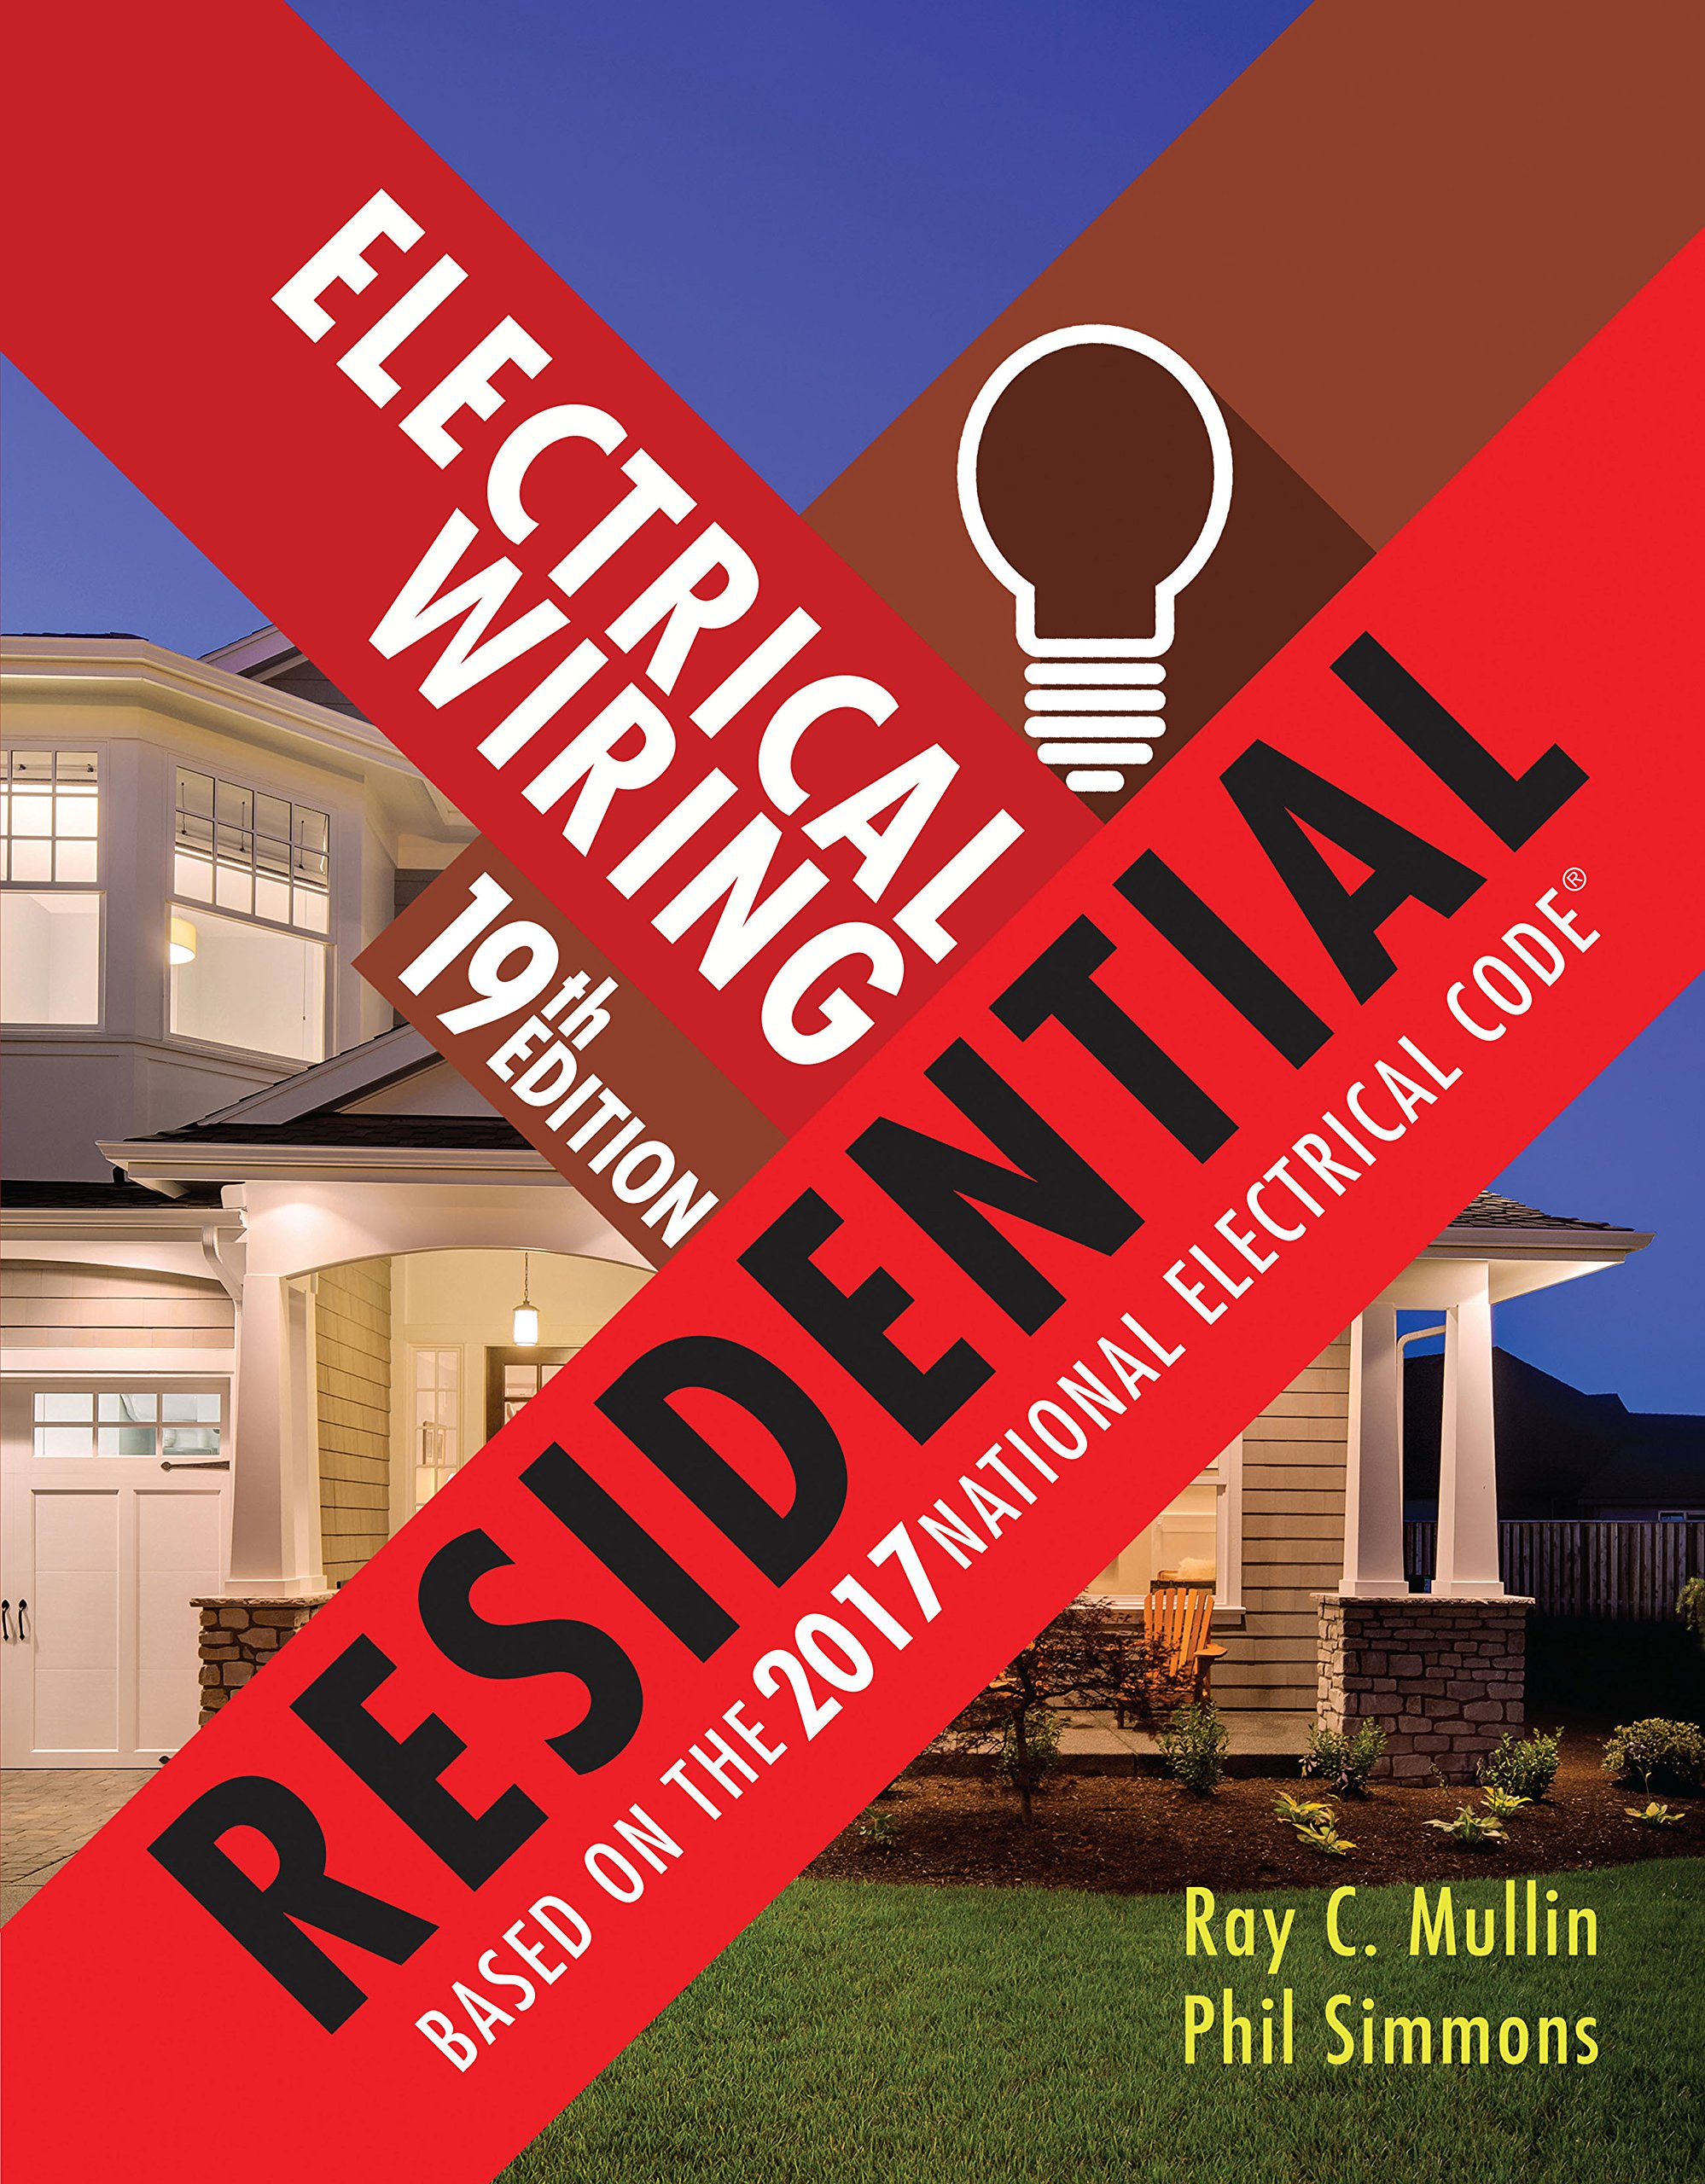 electrical wiring residential, mullin, ray c., simmons, phil, ebook -  amazon.com  amazon.com